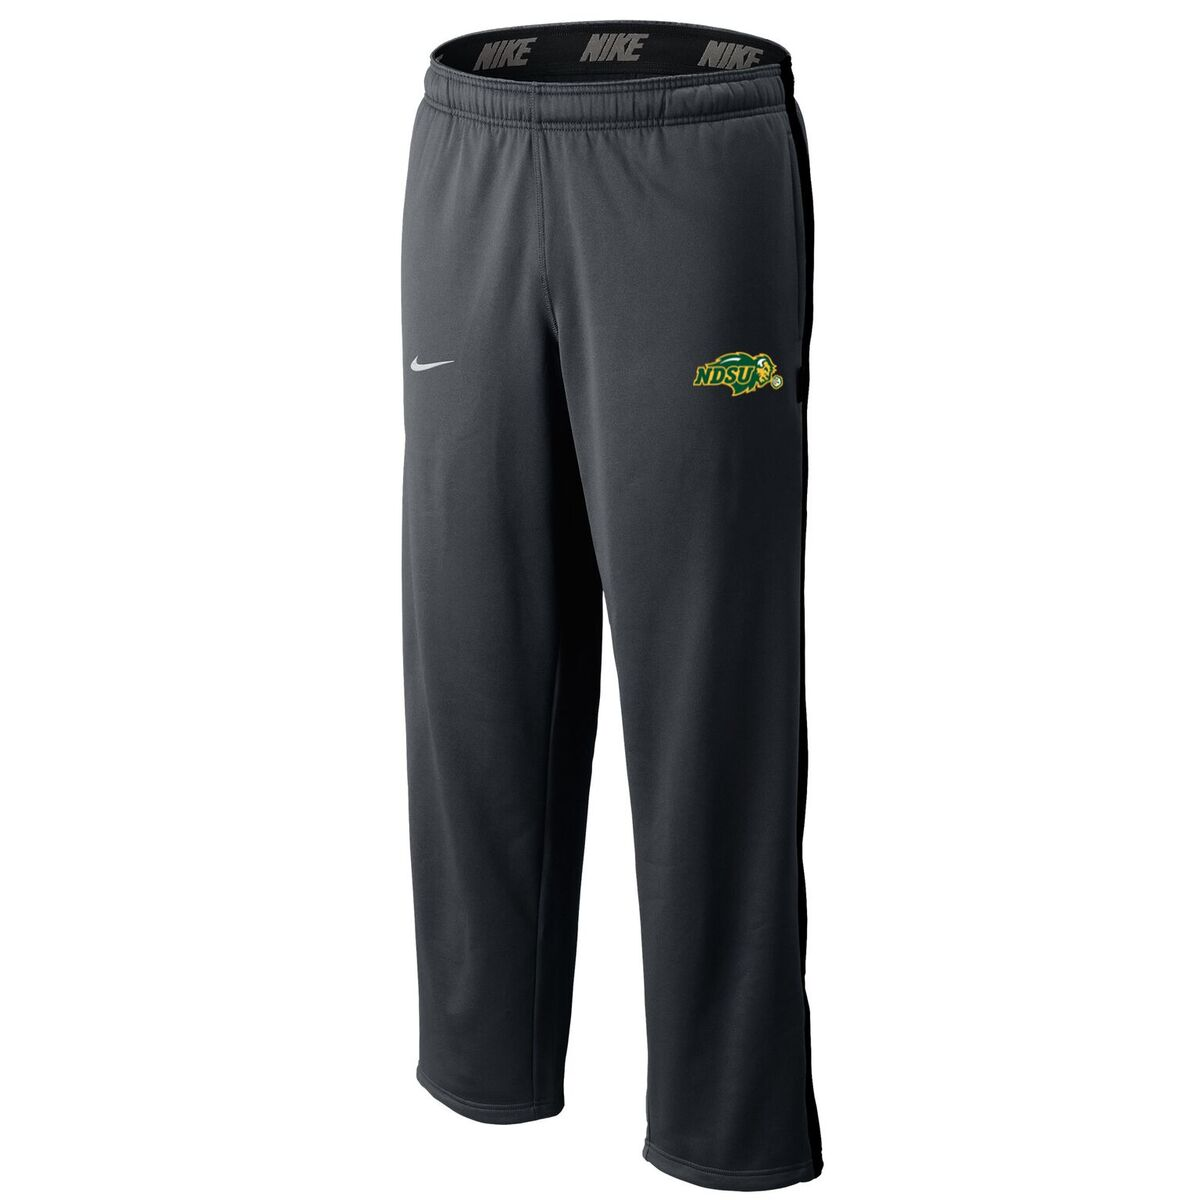 Pant - by Nike 2017 Sideline Collection